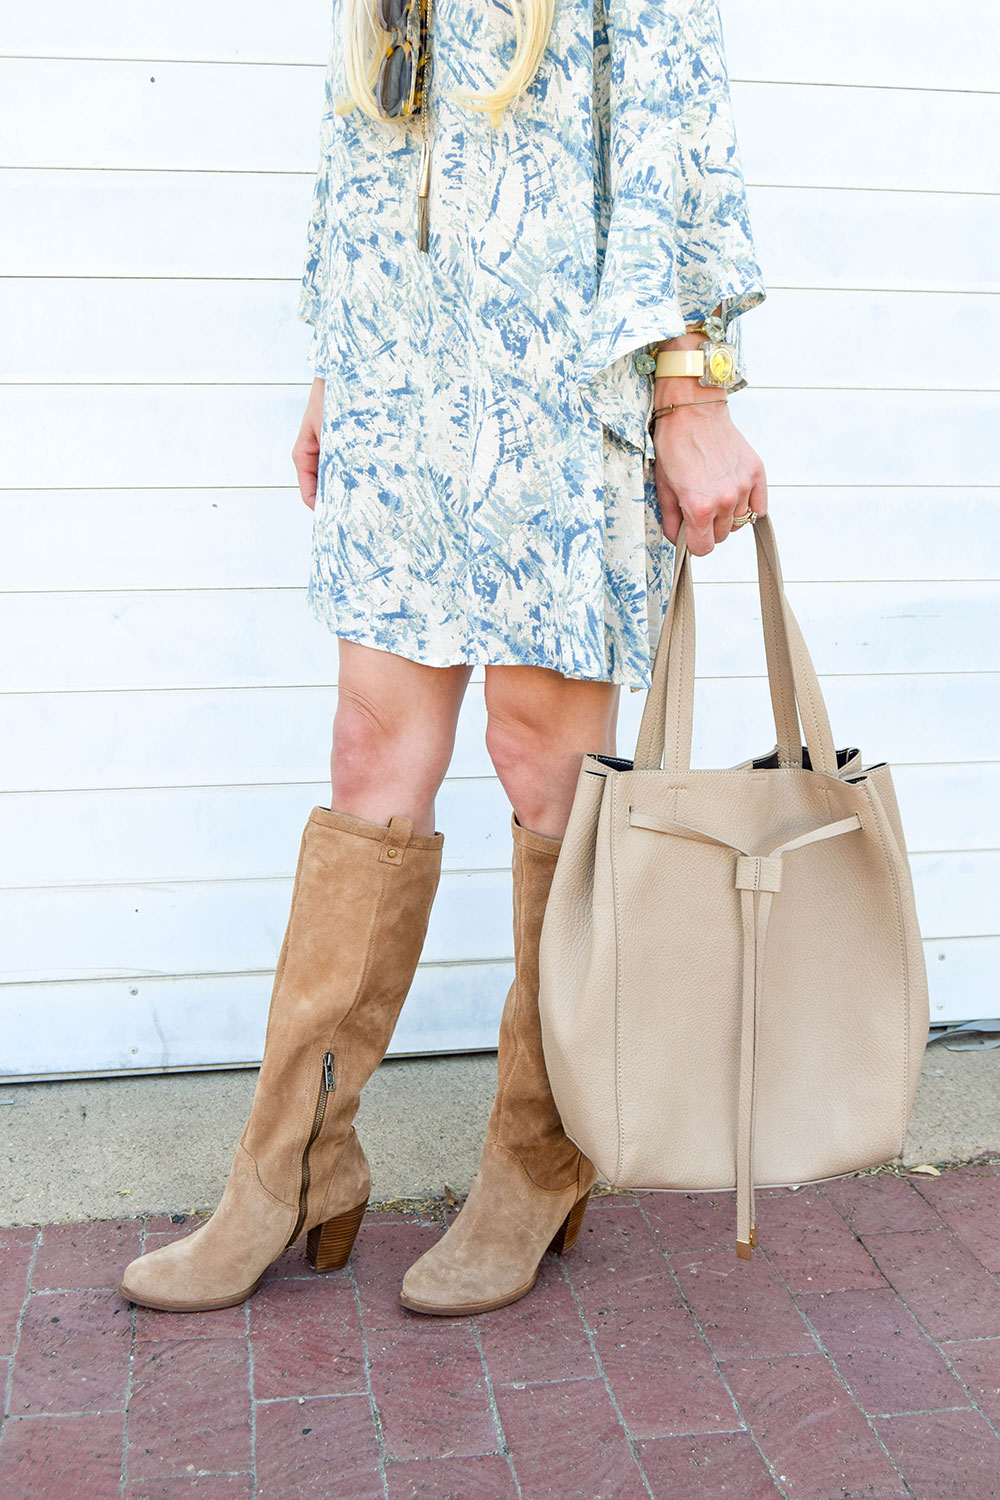 ... vandi-fair-dallas-fashion-blog-lauren-vandiver-southern-